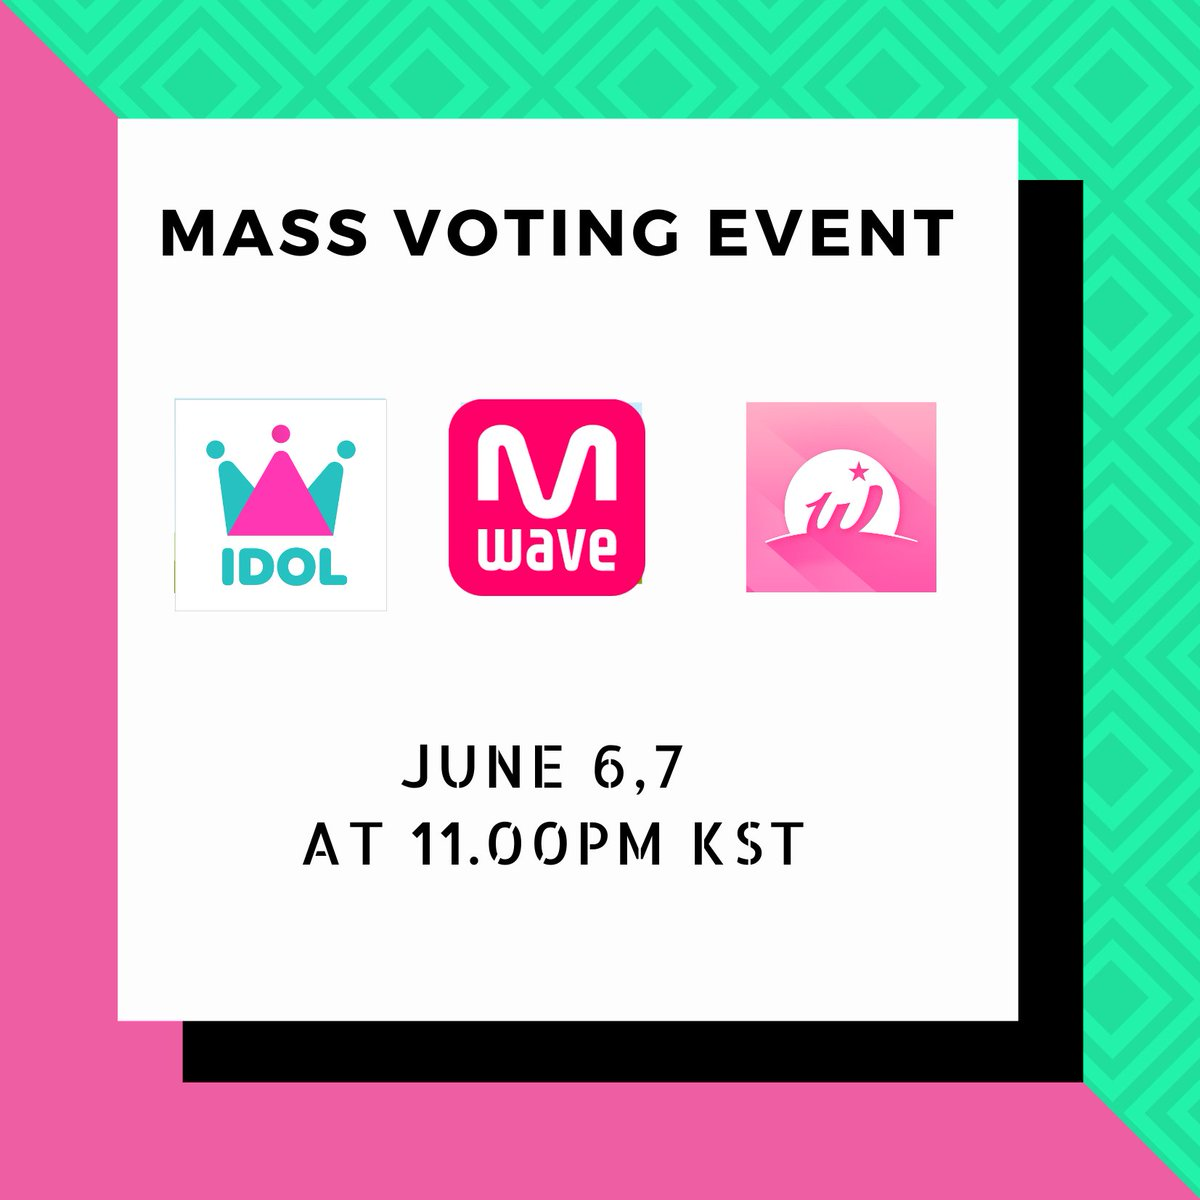 ⚠️ ATTENTION ⚠️ ONCE, we will start our Mass Voting Event Today at 11:00PM KST. Please encourage everyone to join us and spread. (@JYPETWICE)